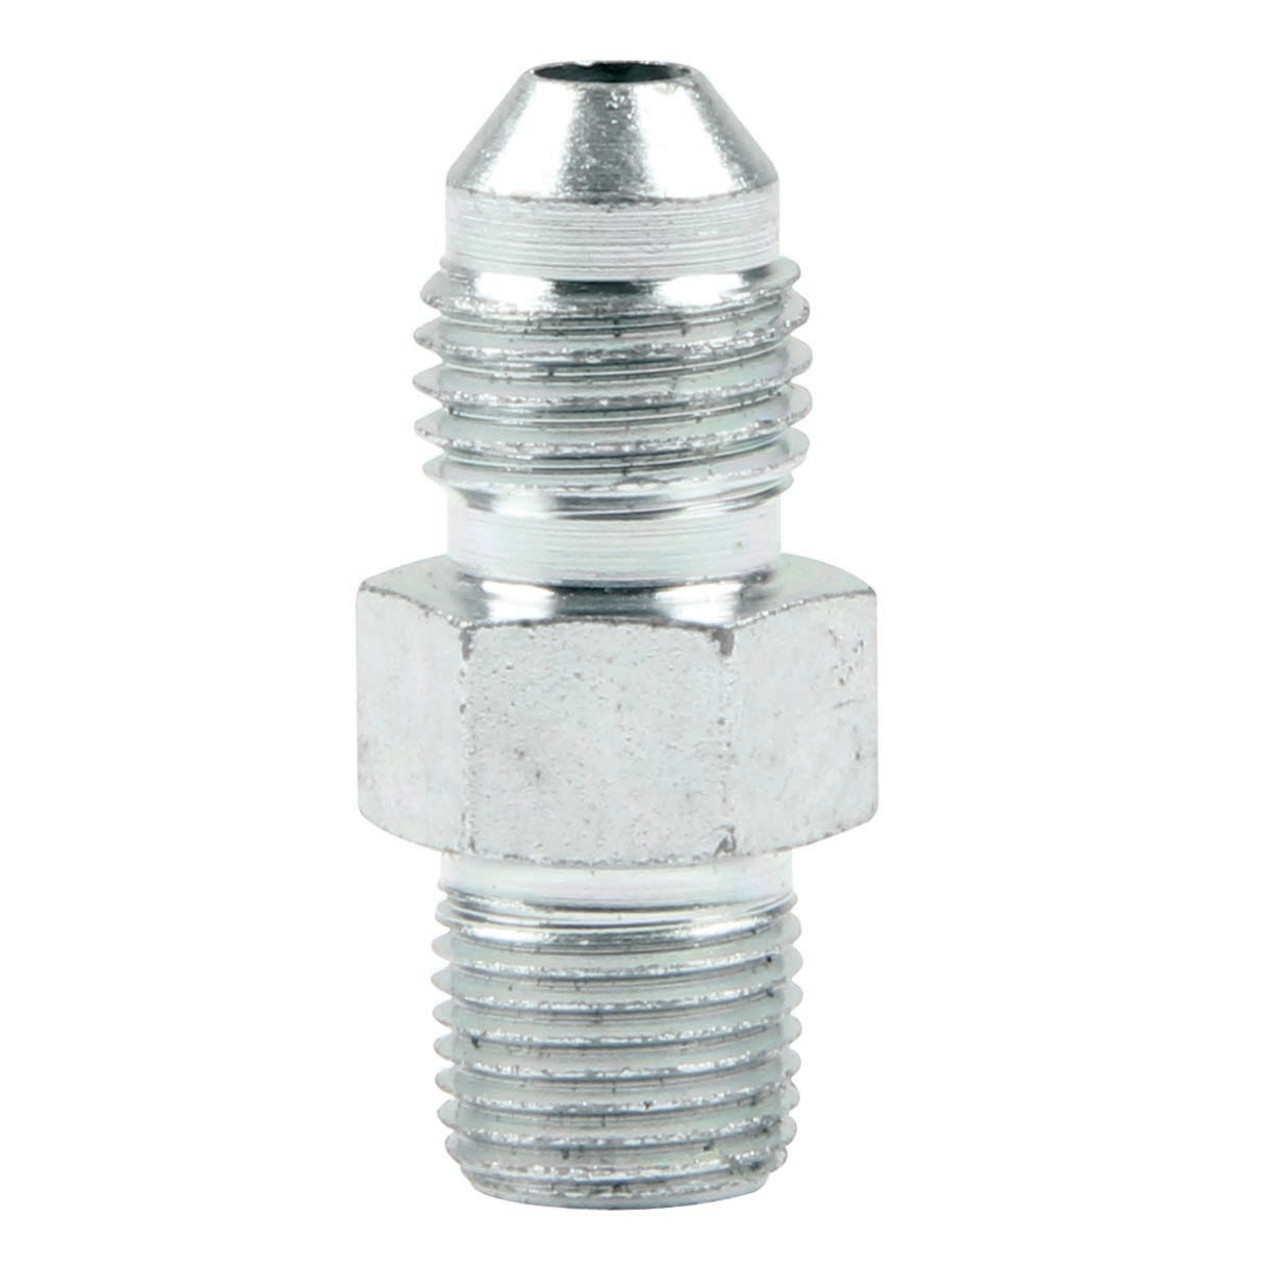 Allstar Performance ALL50001-4 to 1//8 NPT Adapter Fitting